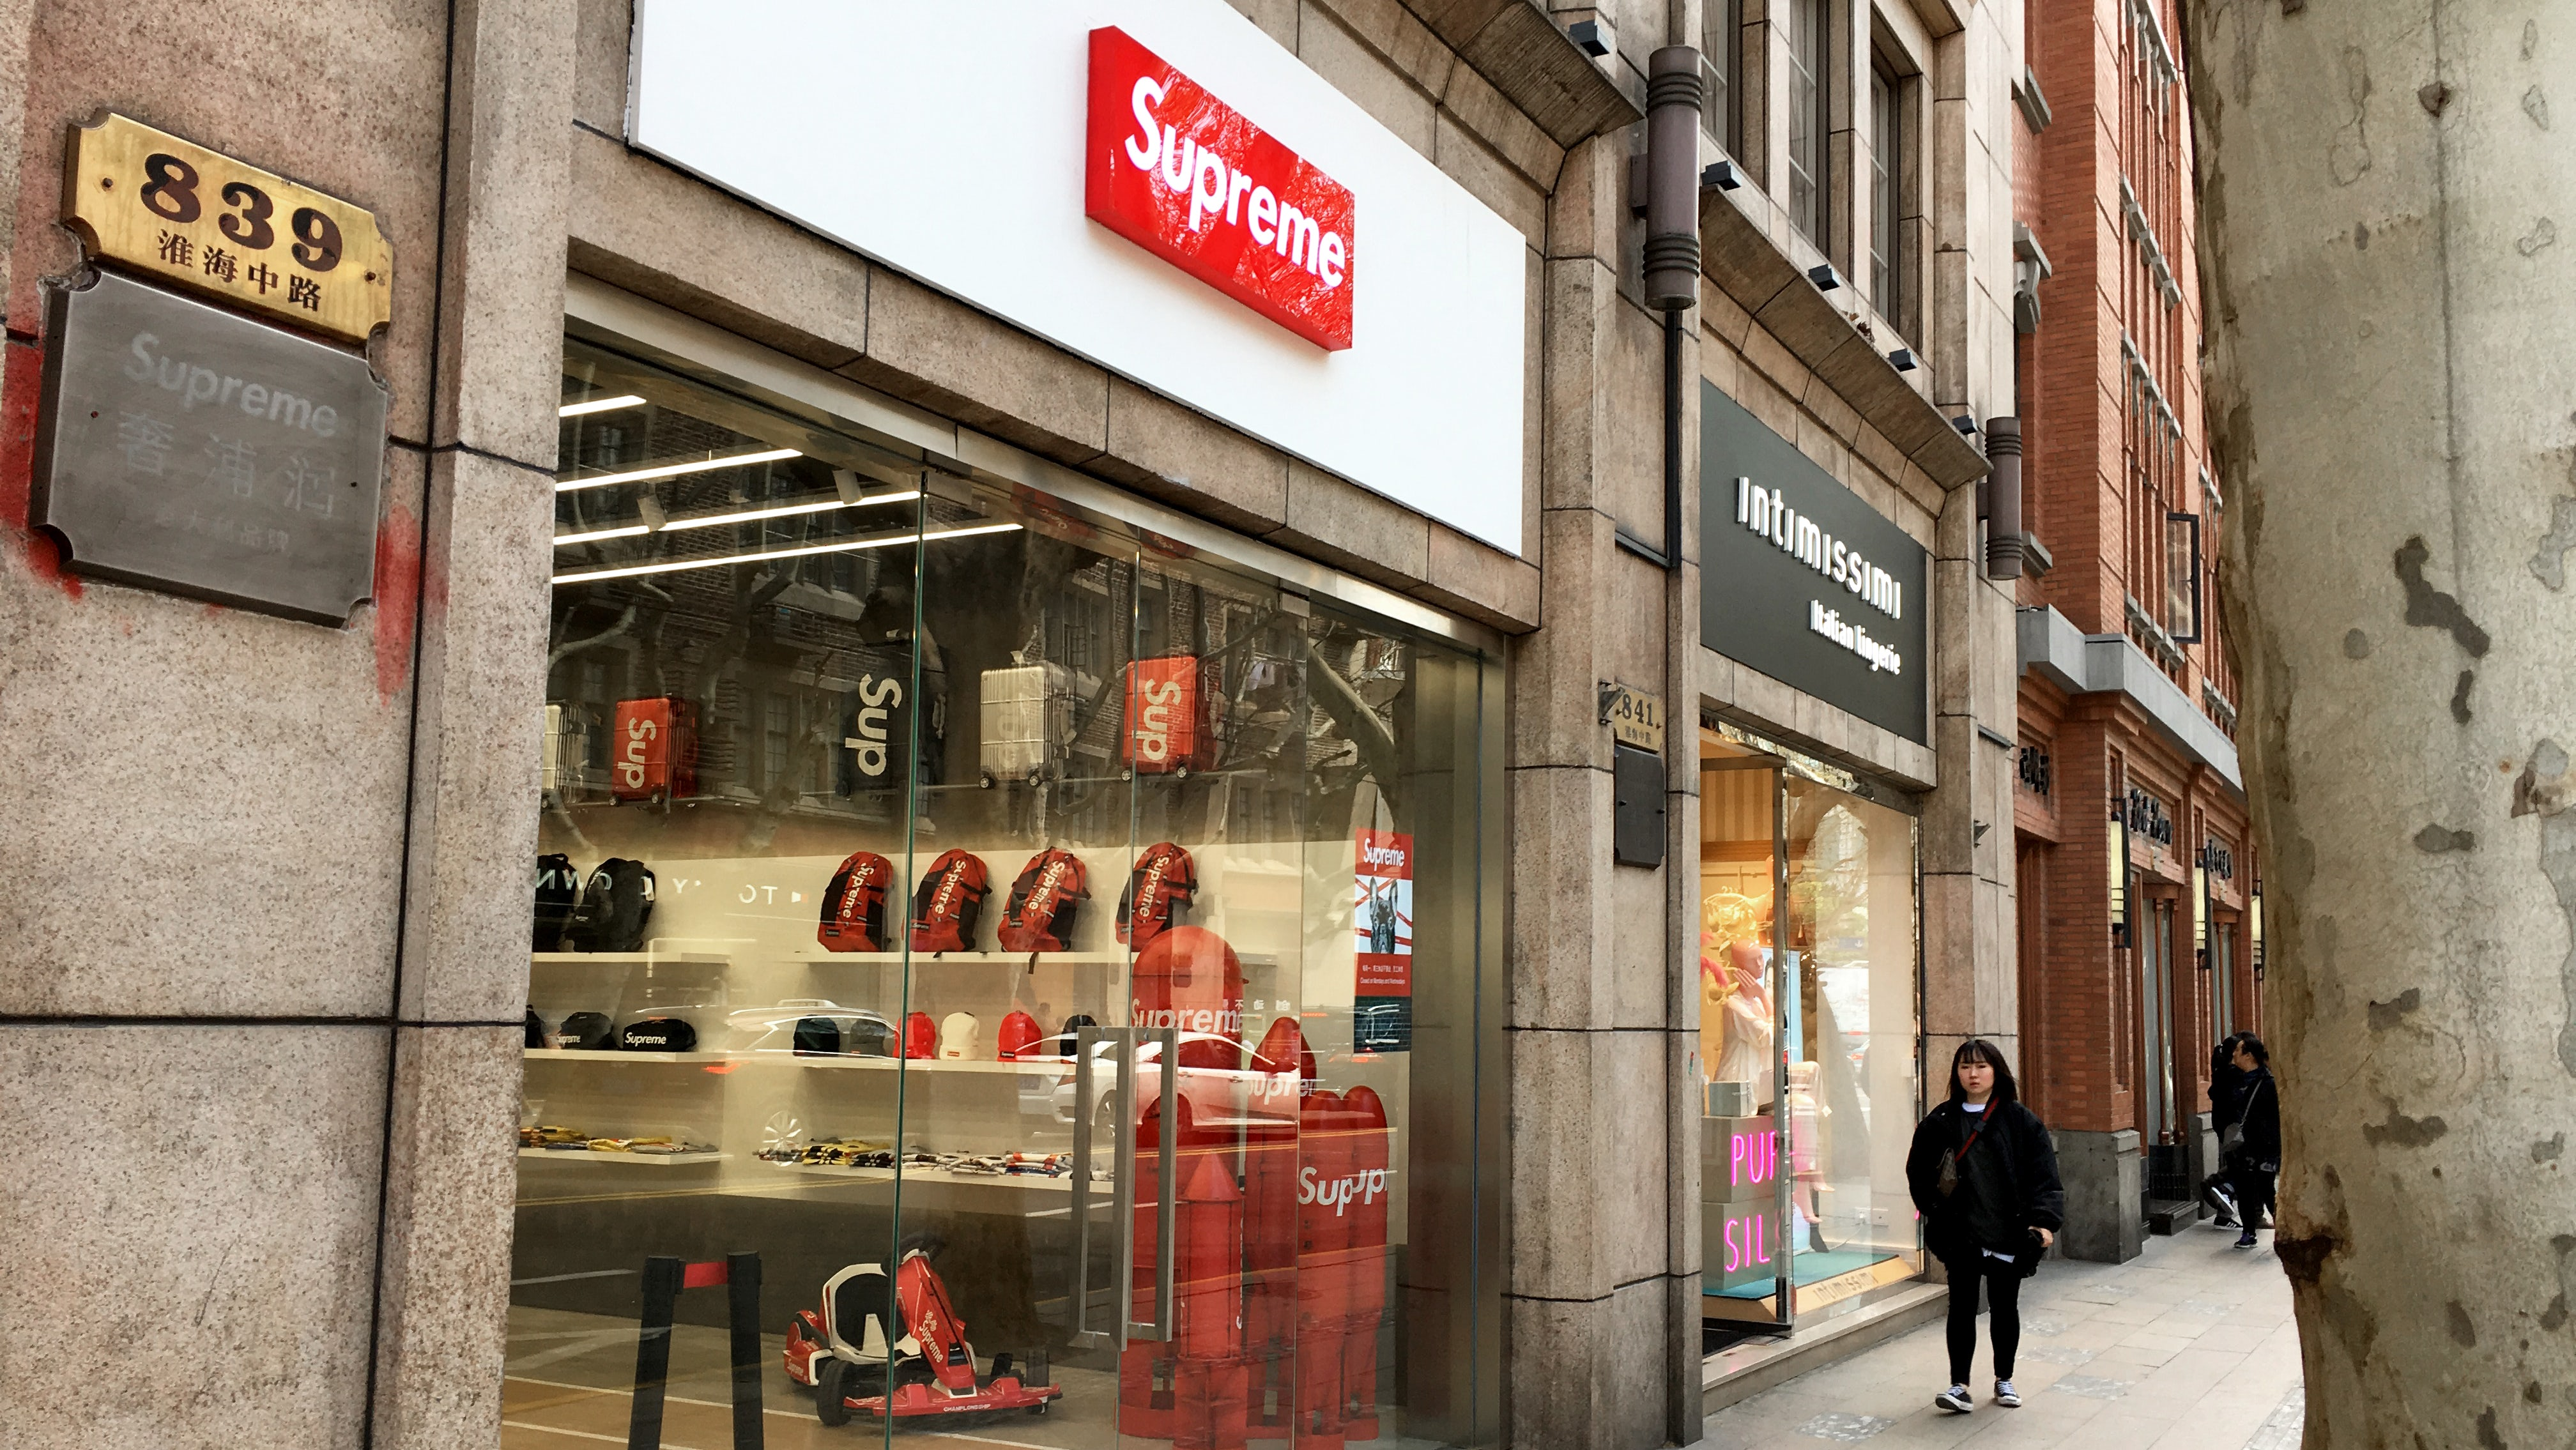 """A store selling """"Supreme Spain"""" product opened on one of Shanghai's busiest retail streets in March 